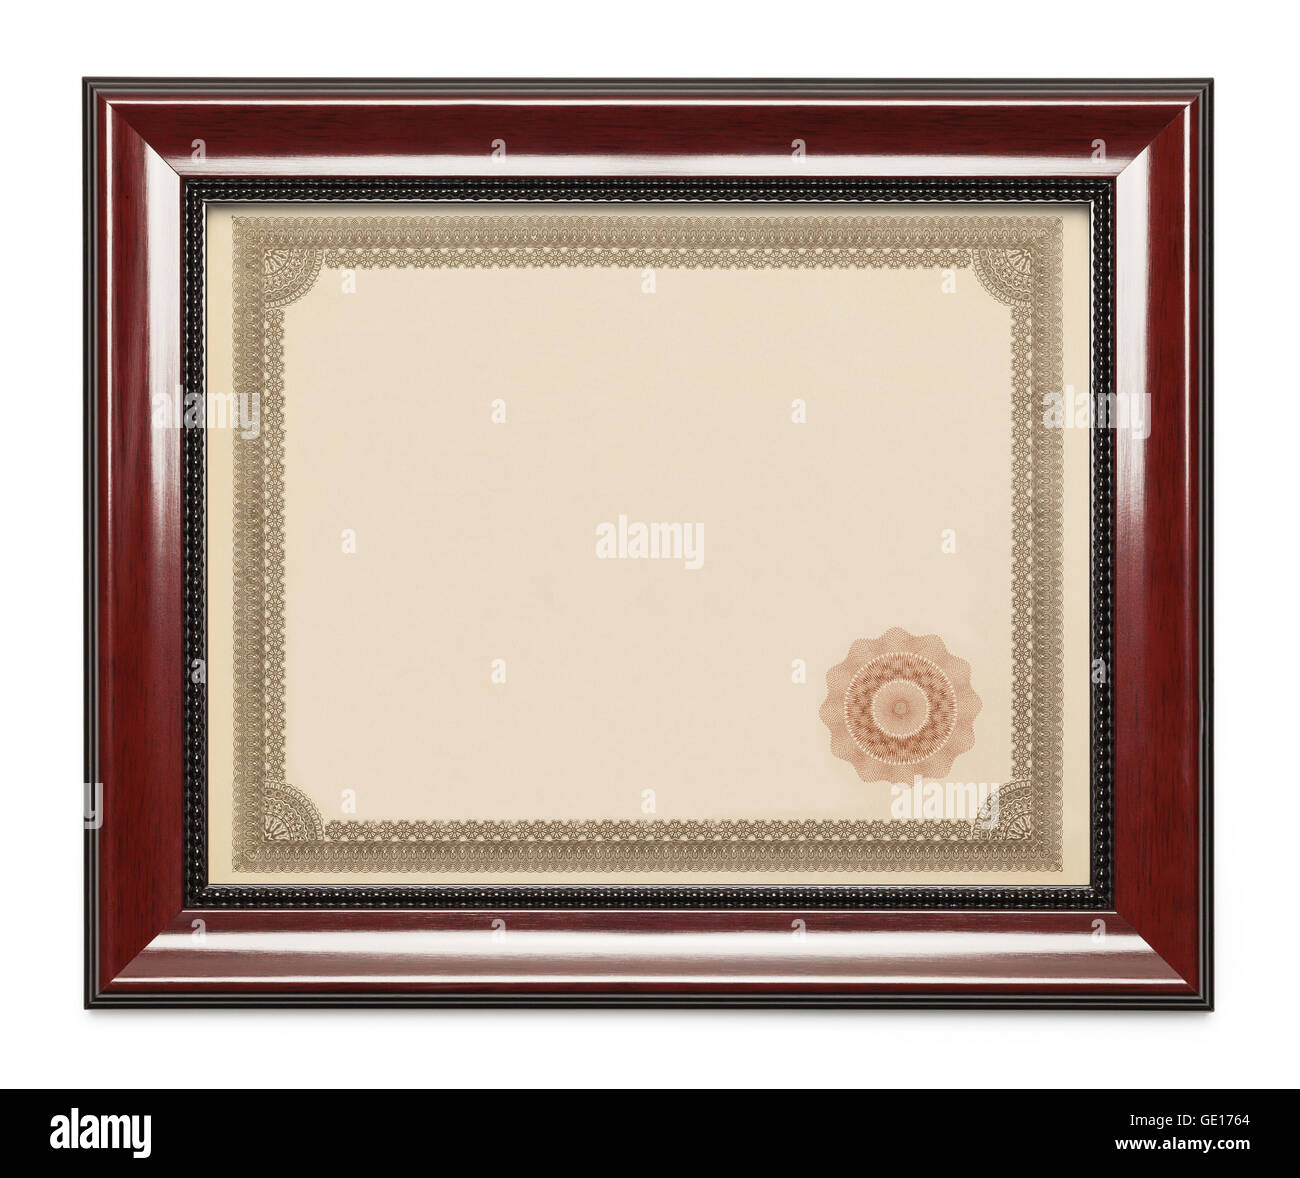 Framed Award Certificate with Copy Space Isolated on White Background. - Stock Image